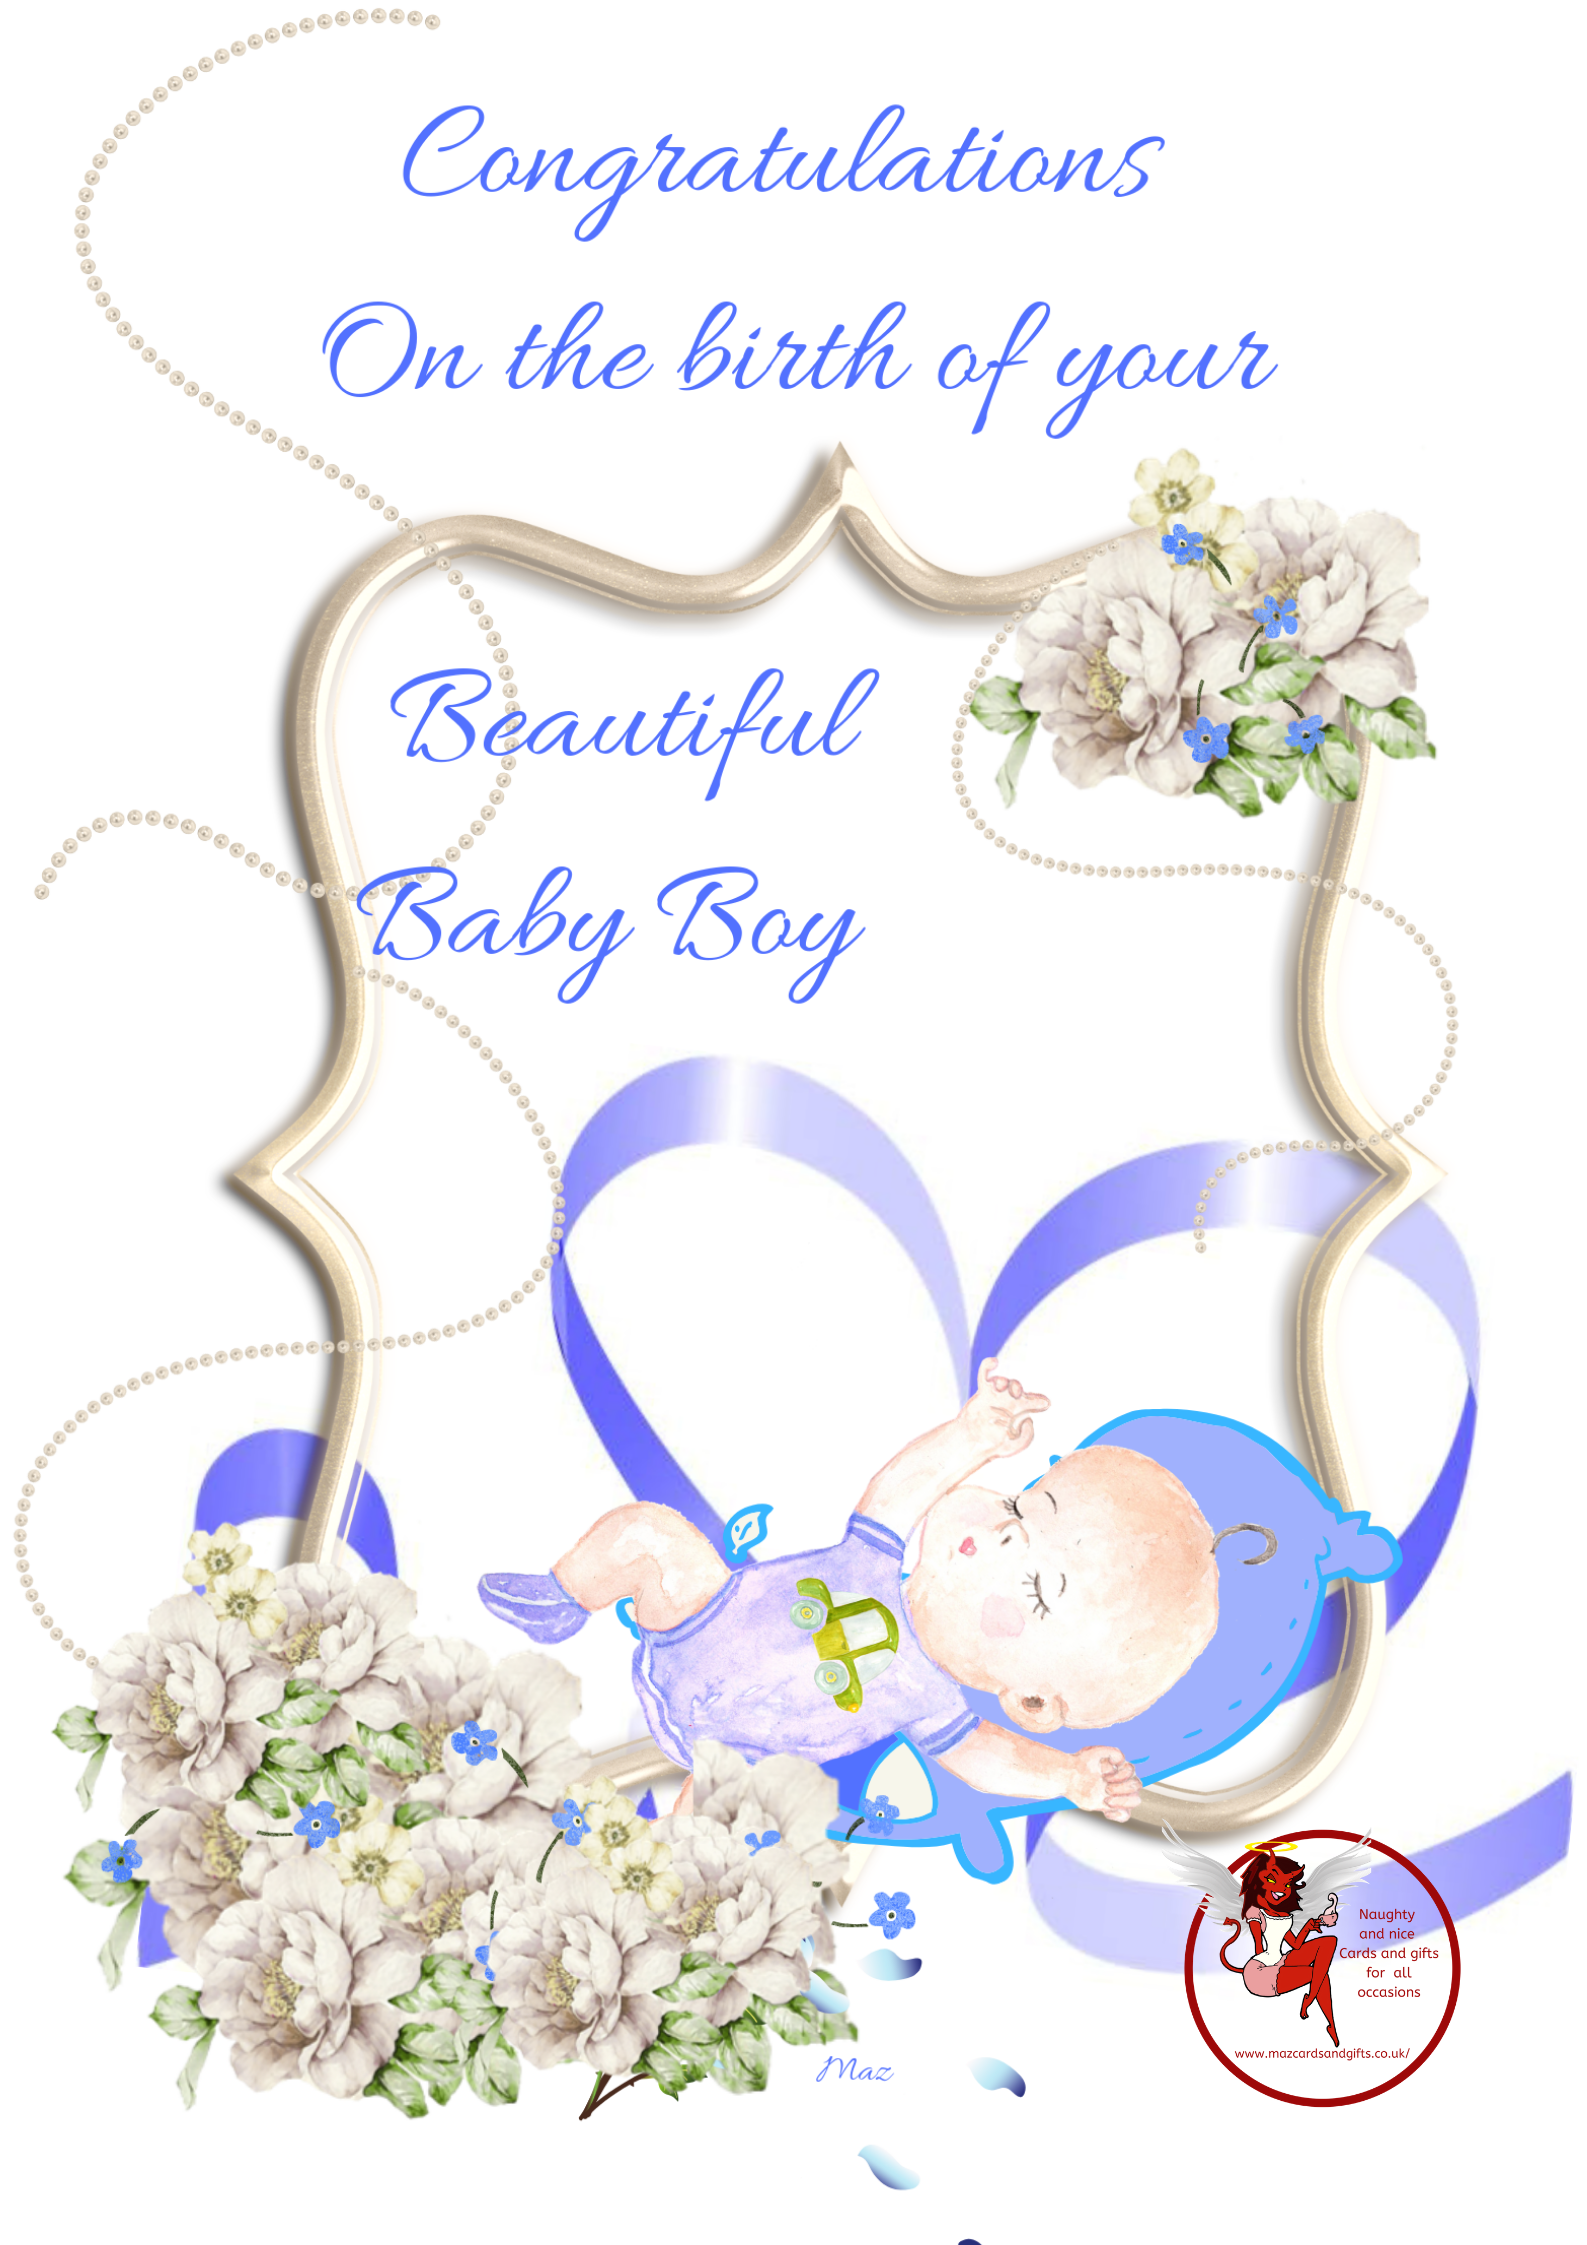 New Baby - Birth of a baby Boy - Flowers Pearls and ribbon - Order No 073